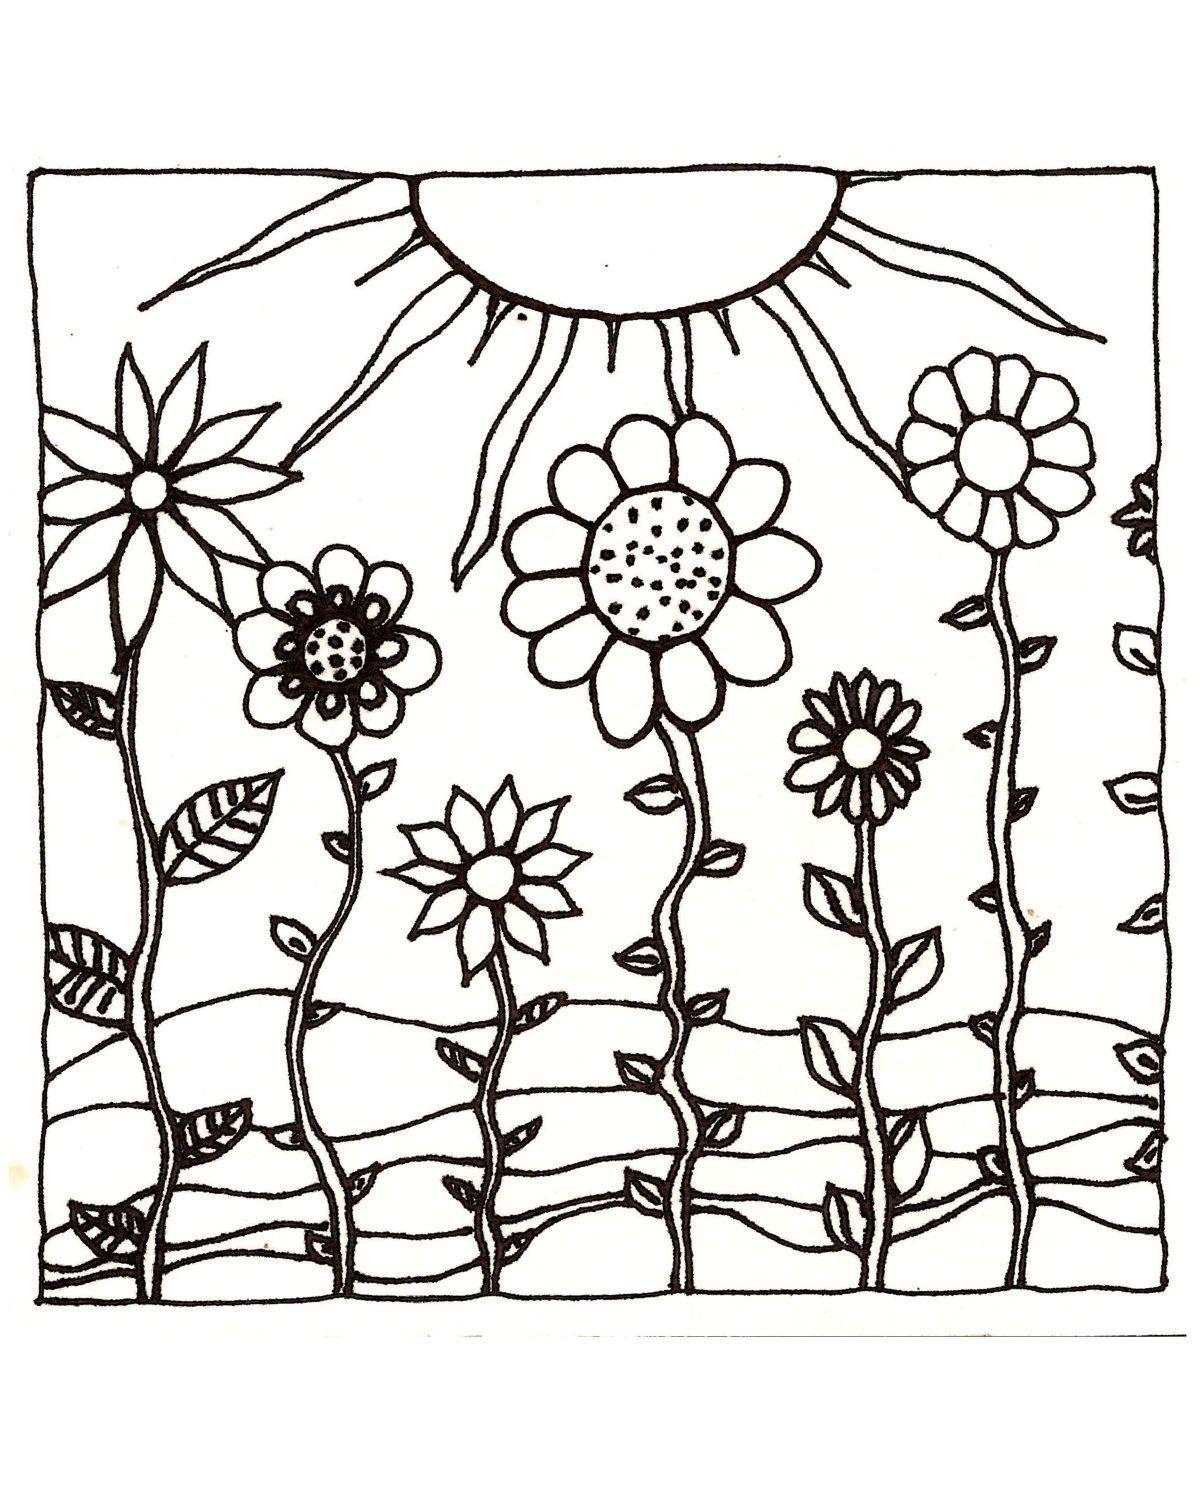 Download Printableadult Coloring Page Digital Hand Drawn Papers By Me Printables Sun Sunset